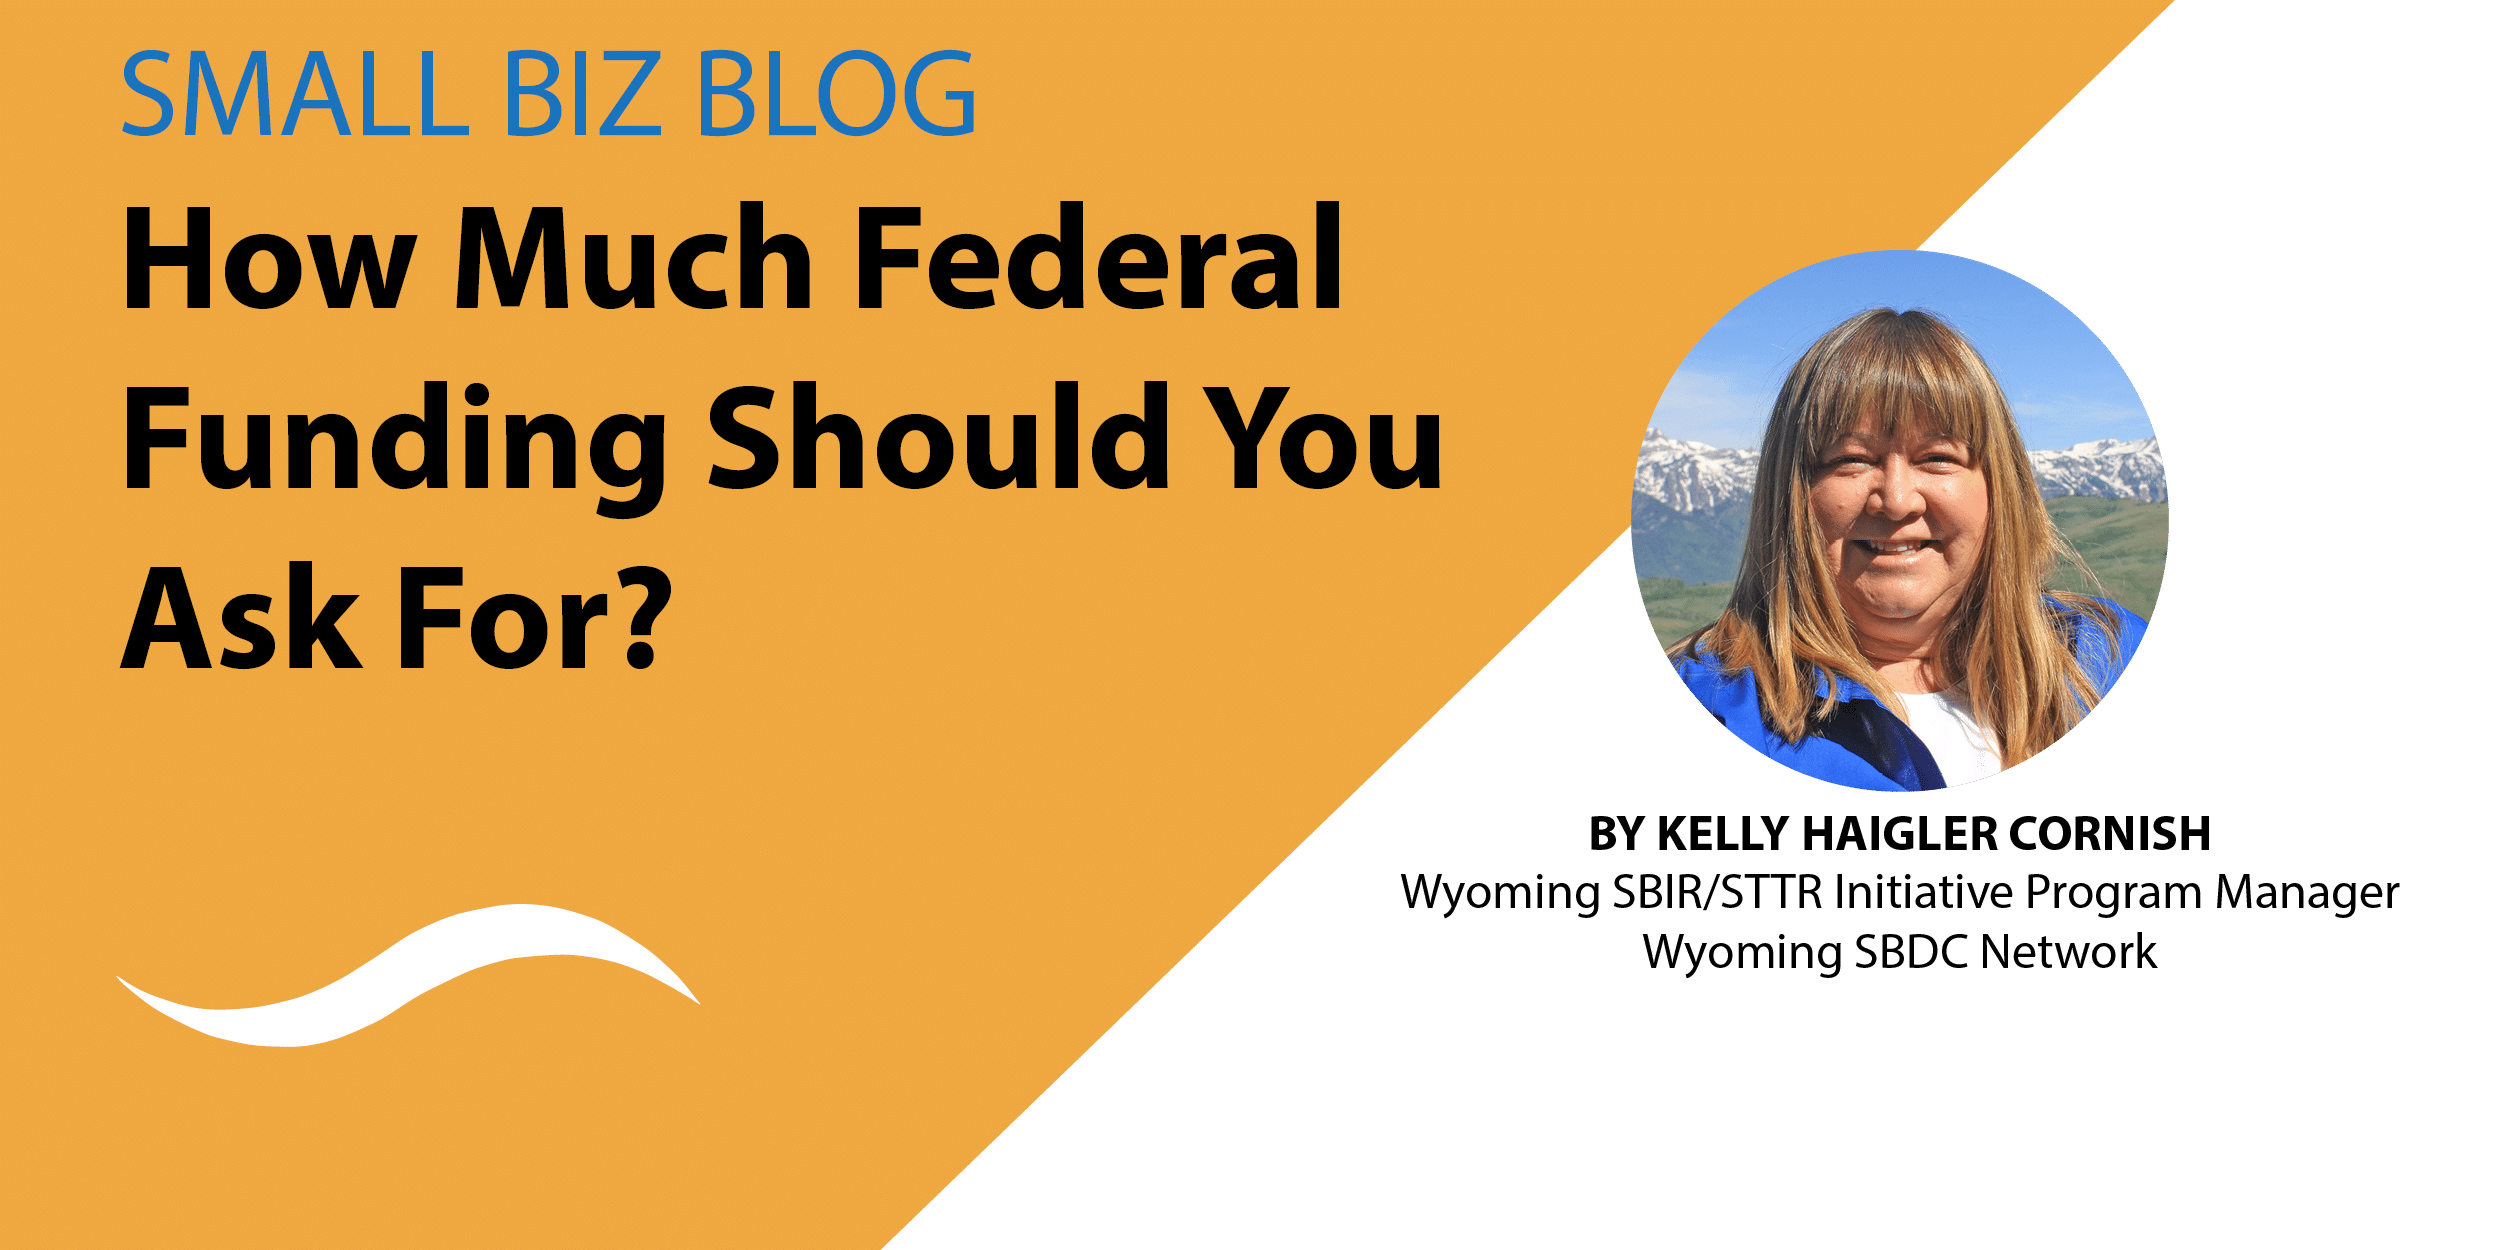 How Much Federal Funding Should You Ask For?